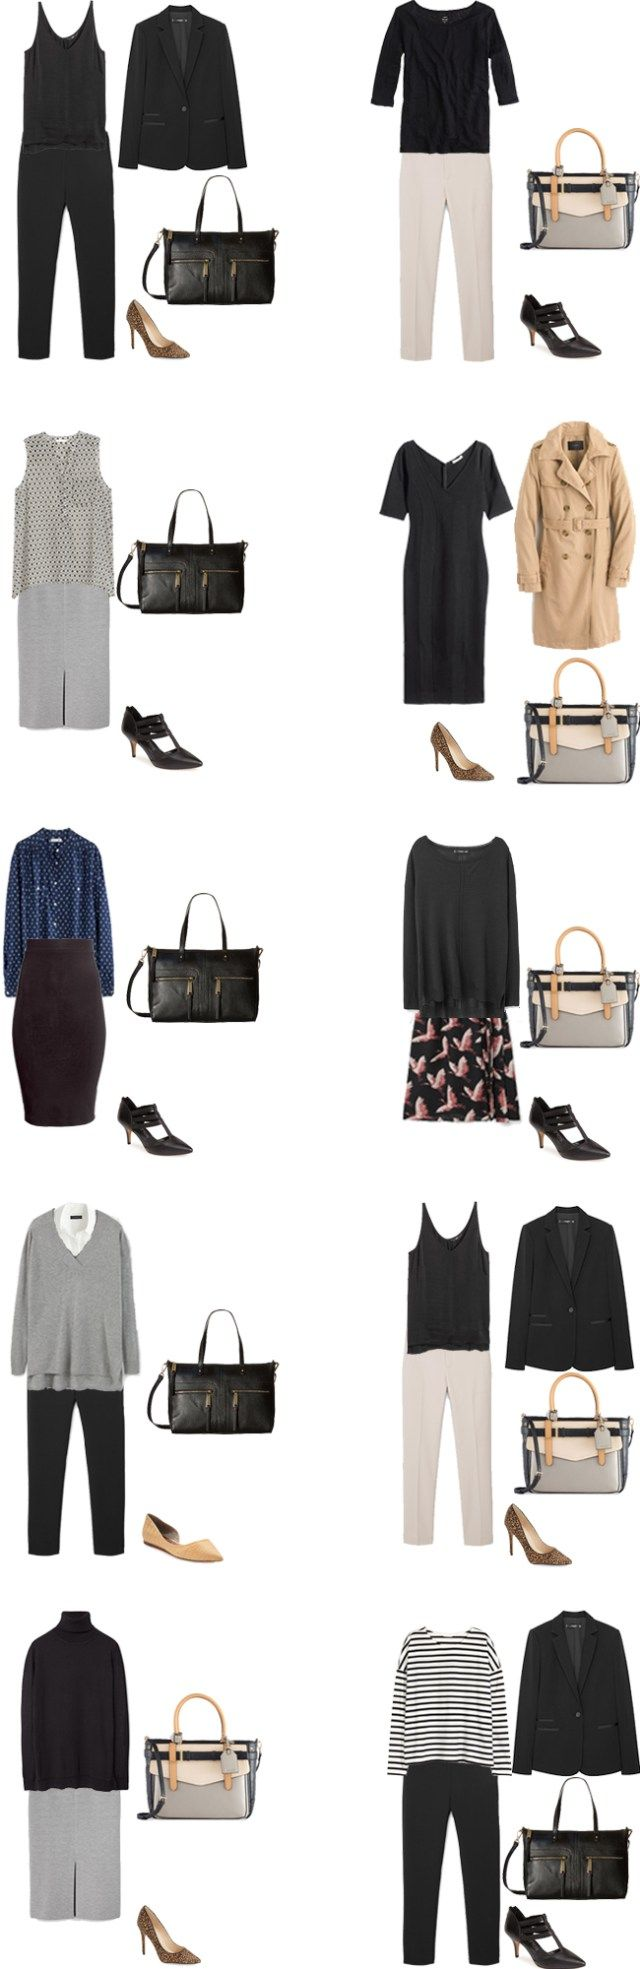 Basic Work Capsule Wardrobe 40 Outfit Ideas - Outfits 31-40